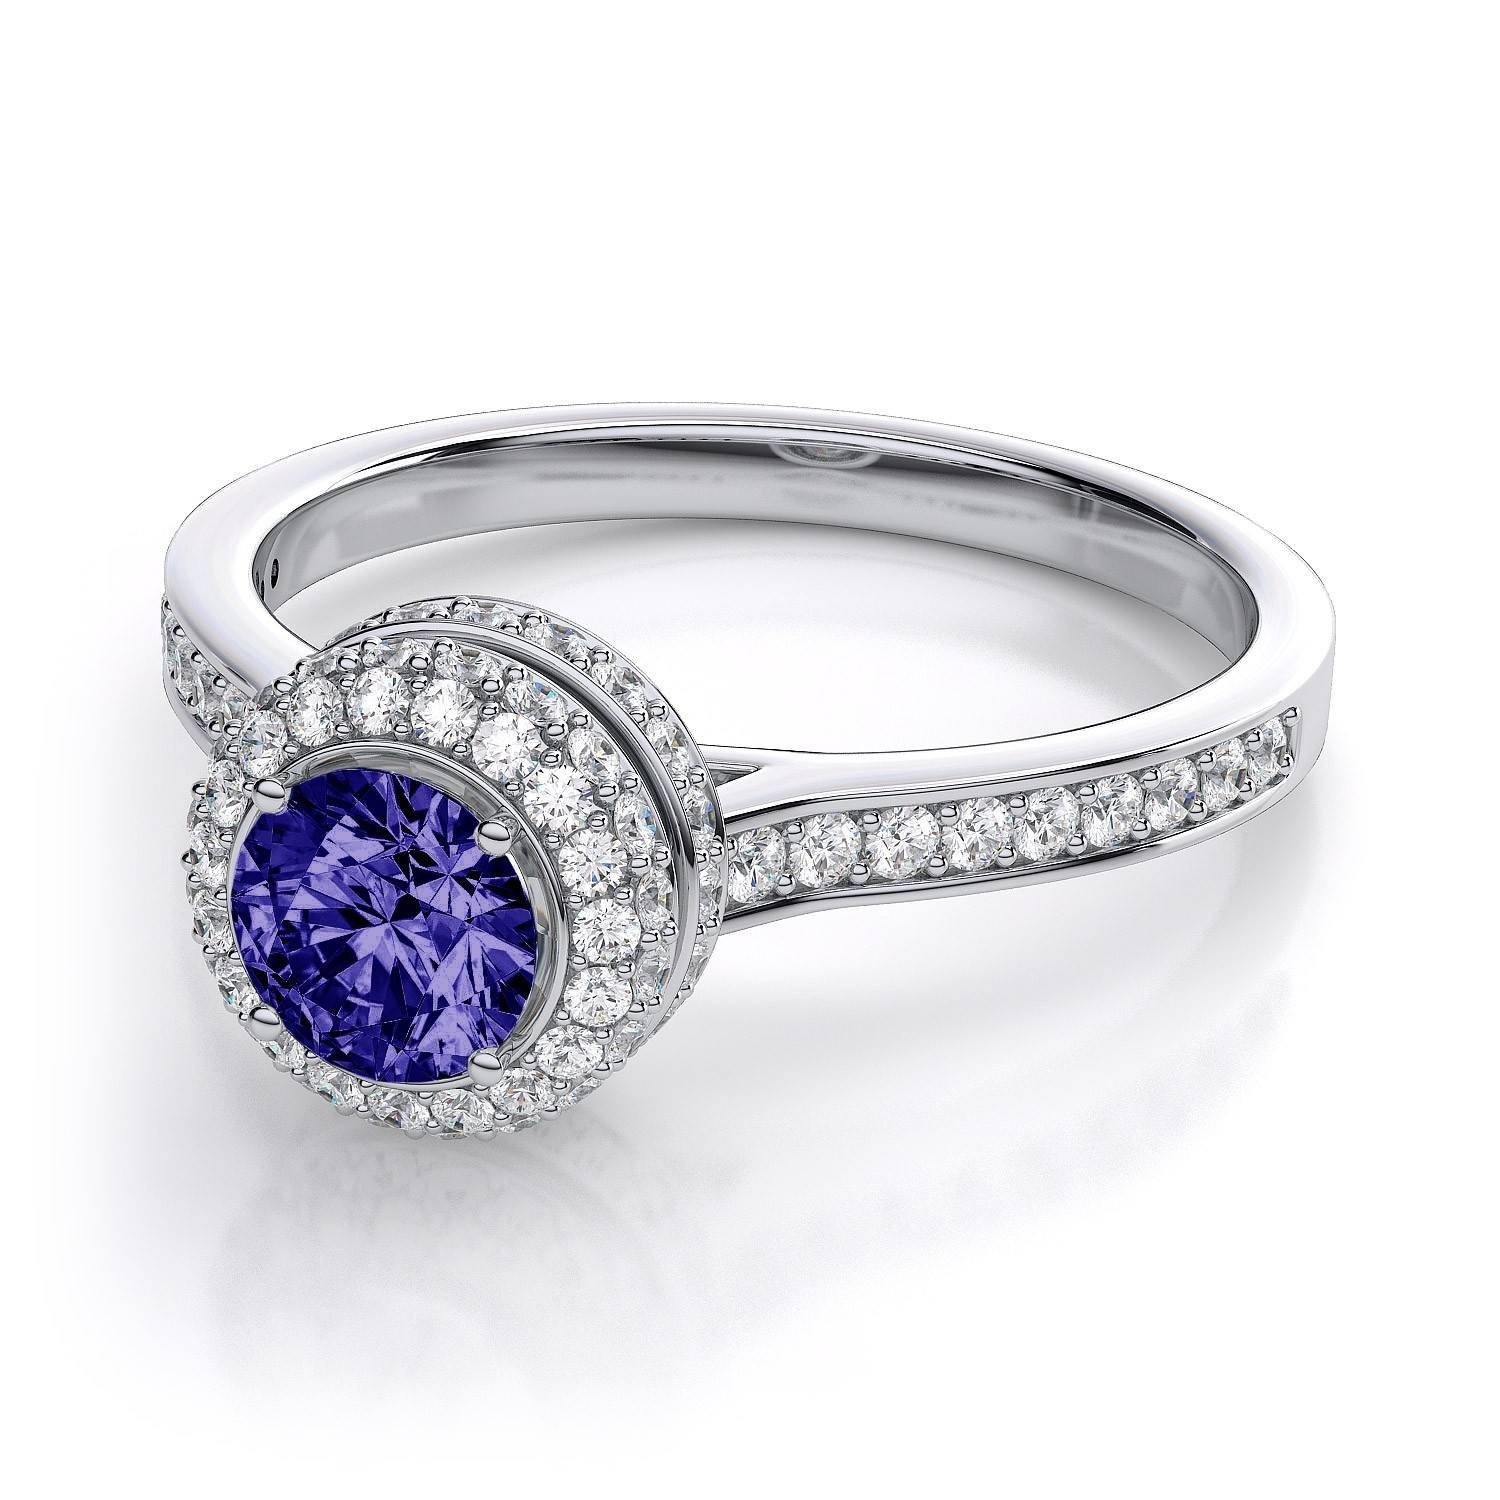 Cirque Halo Tanzanite And Diamond Engagement Ring In 14k White Gold Regarding Diamond Tanzanite Engagement Rings (View 4 of 15)